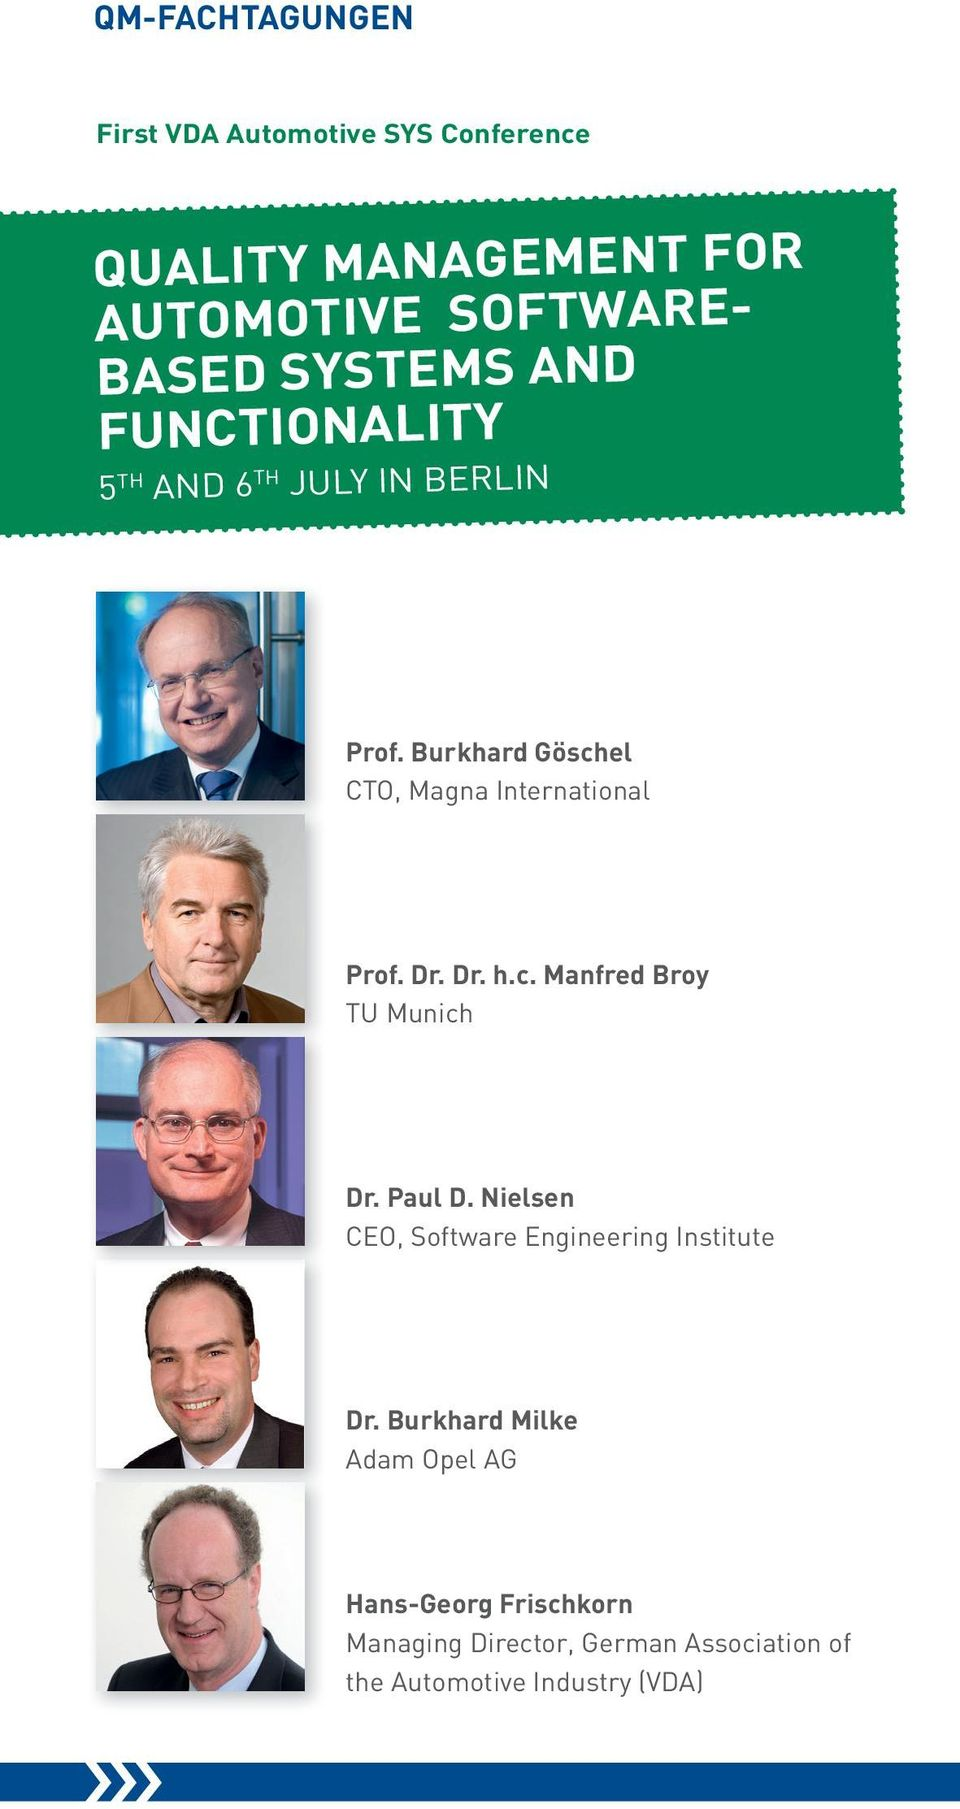 burkhard göschel Cto, magna international Prof. dr. dr. h.c. Manfred broy tu munich dr. Paul d.